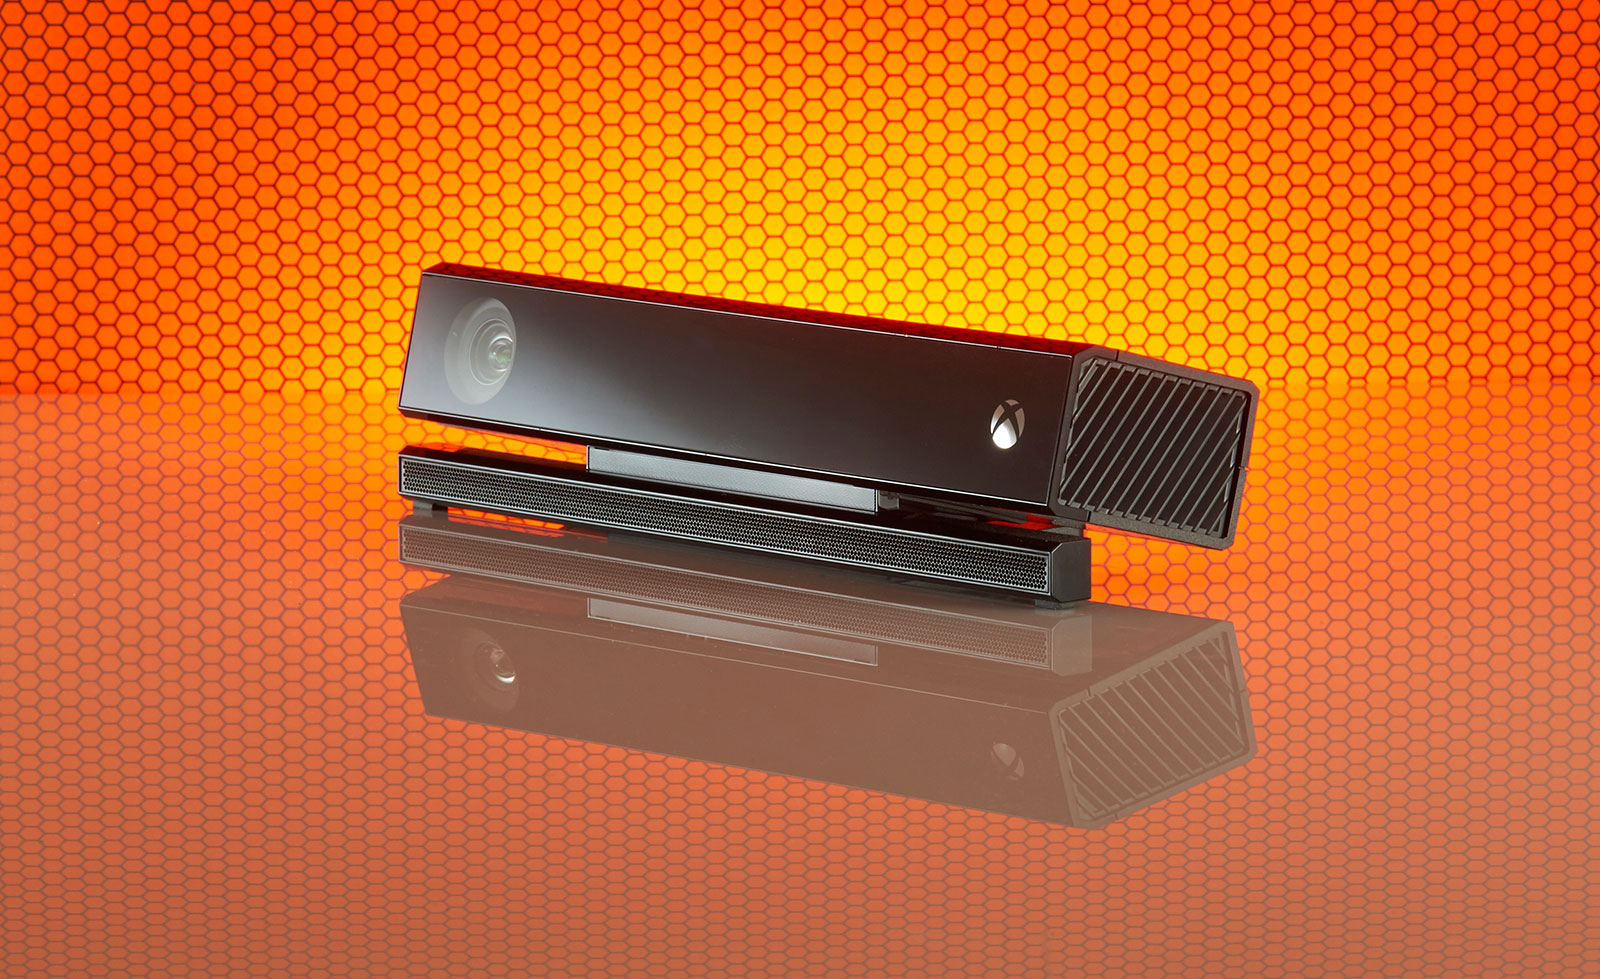 The Xbox One revisited: Microsoft's console has gotten